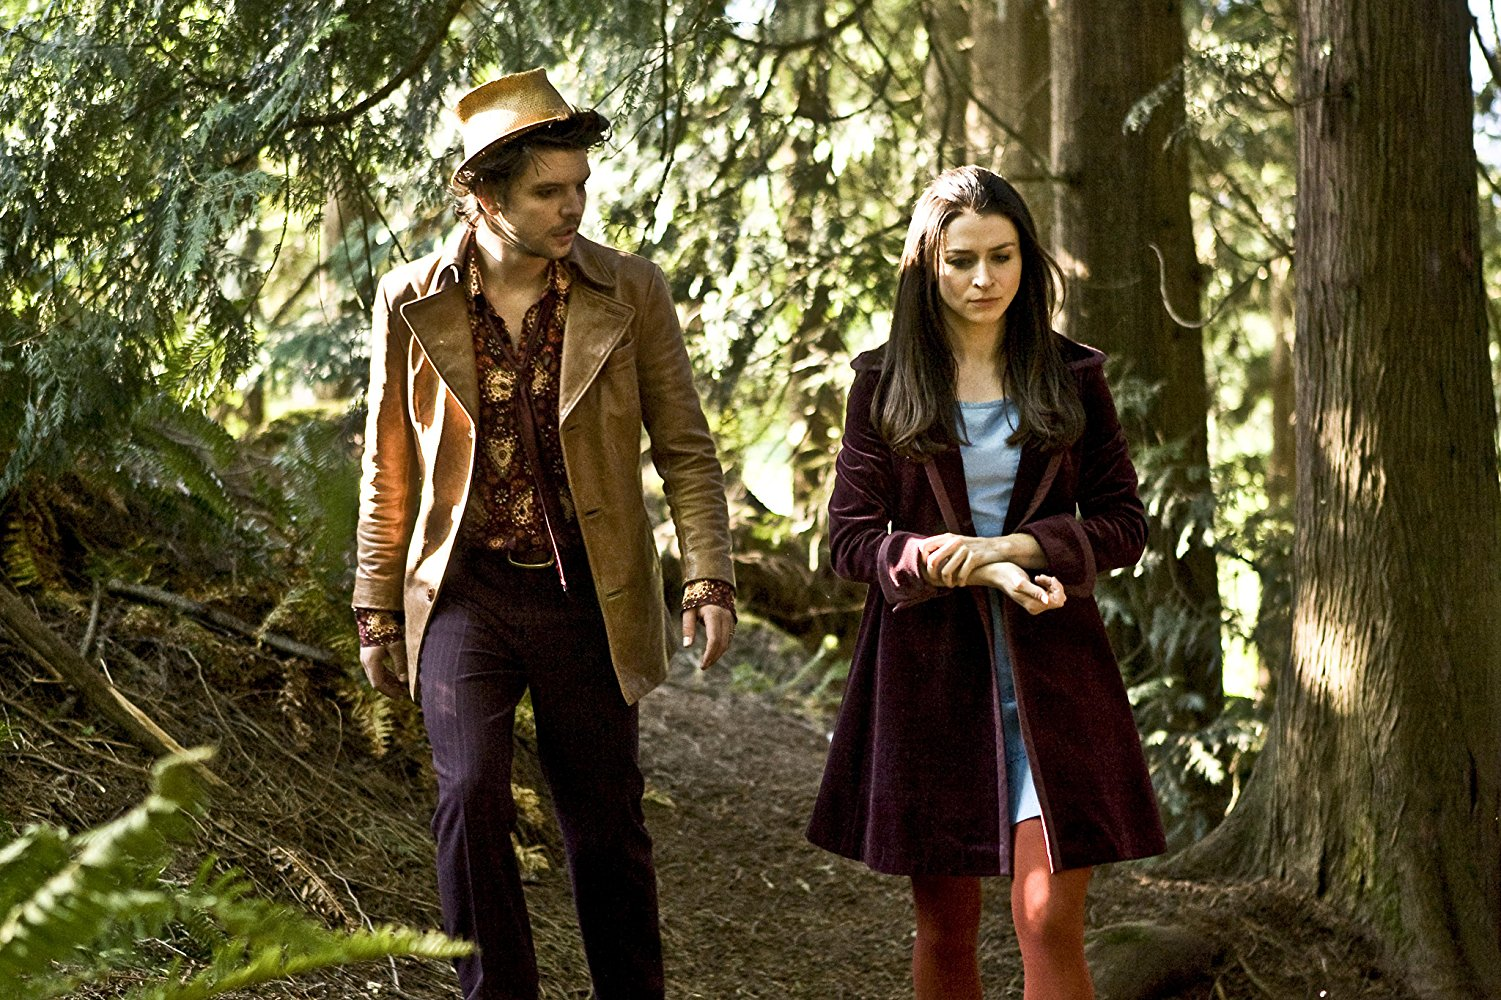 The hatter (Andrew Lee Potts) and Alice (Caterina Scorsone) in Alice (2009)